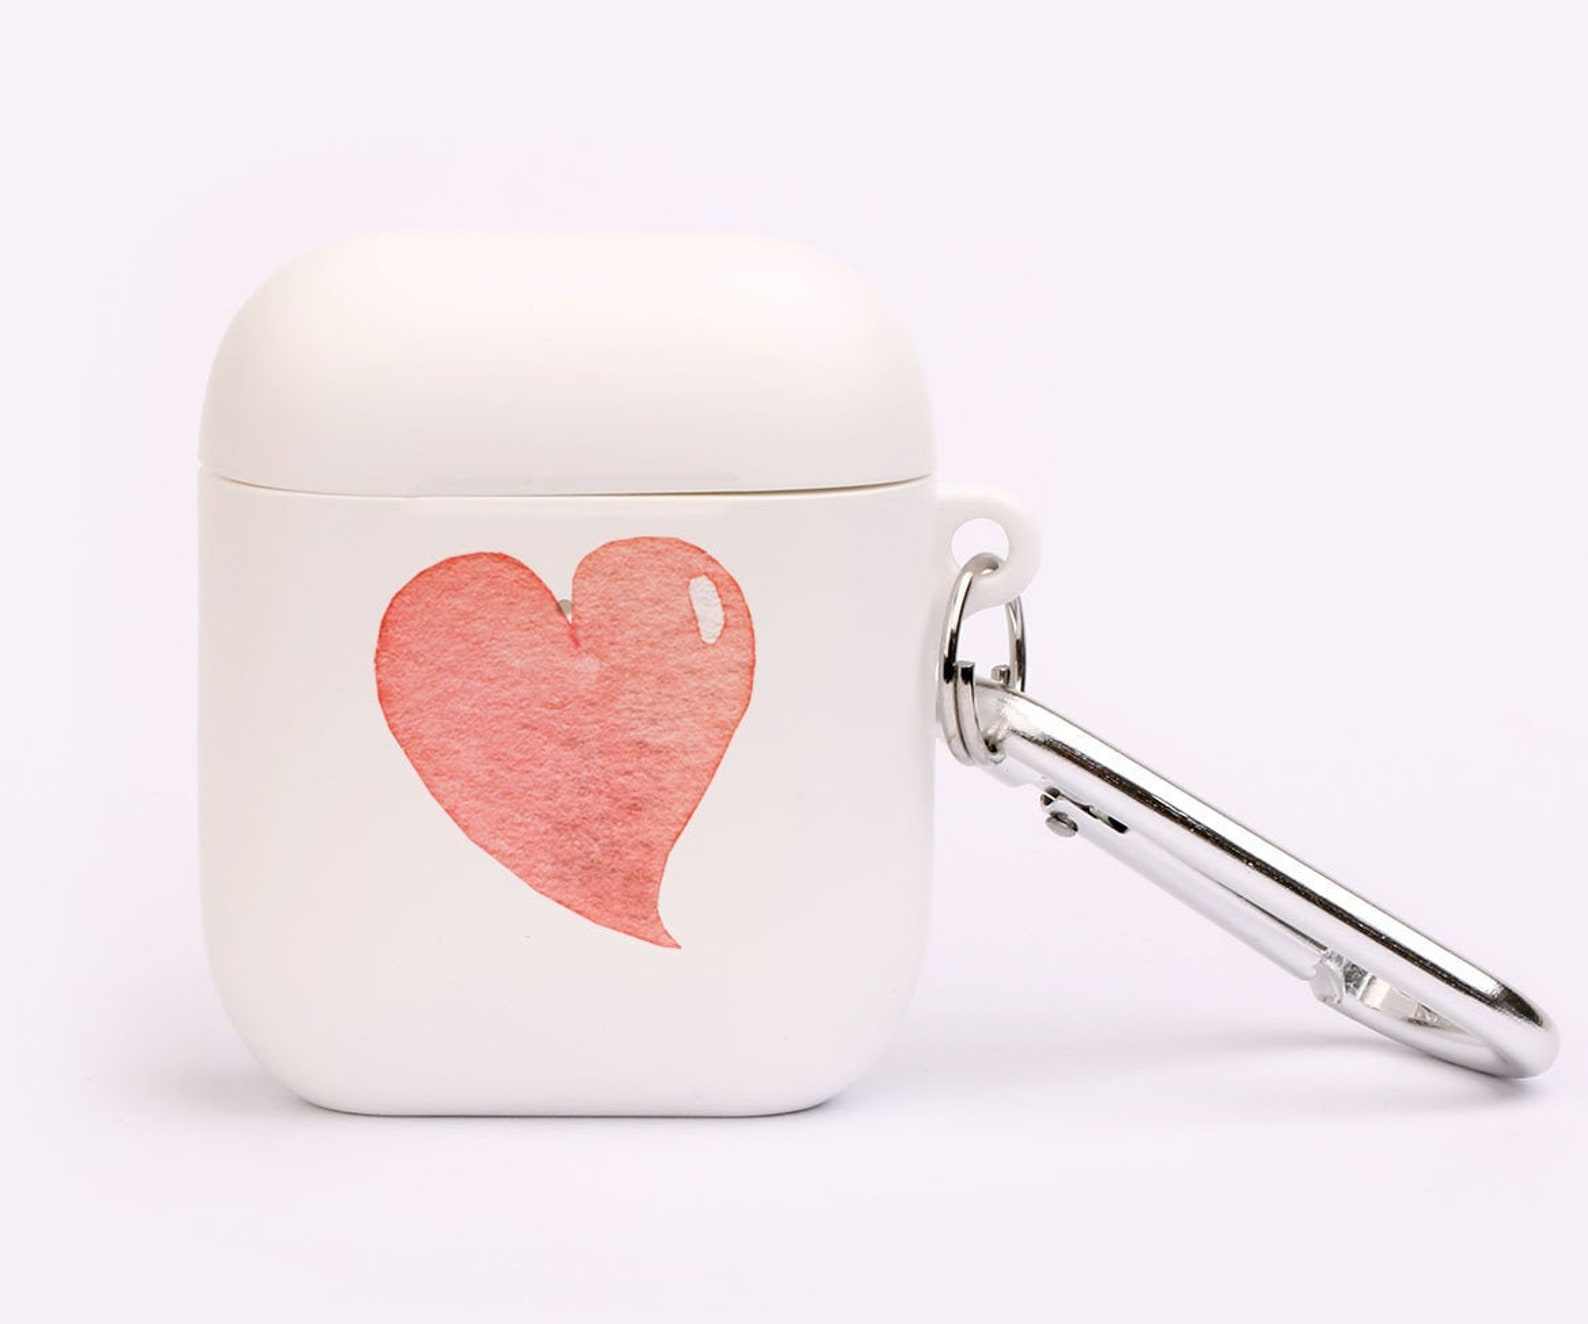 Heart AirPod Cases